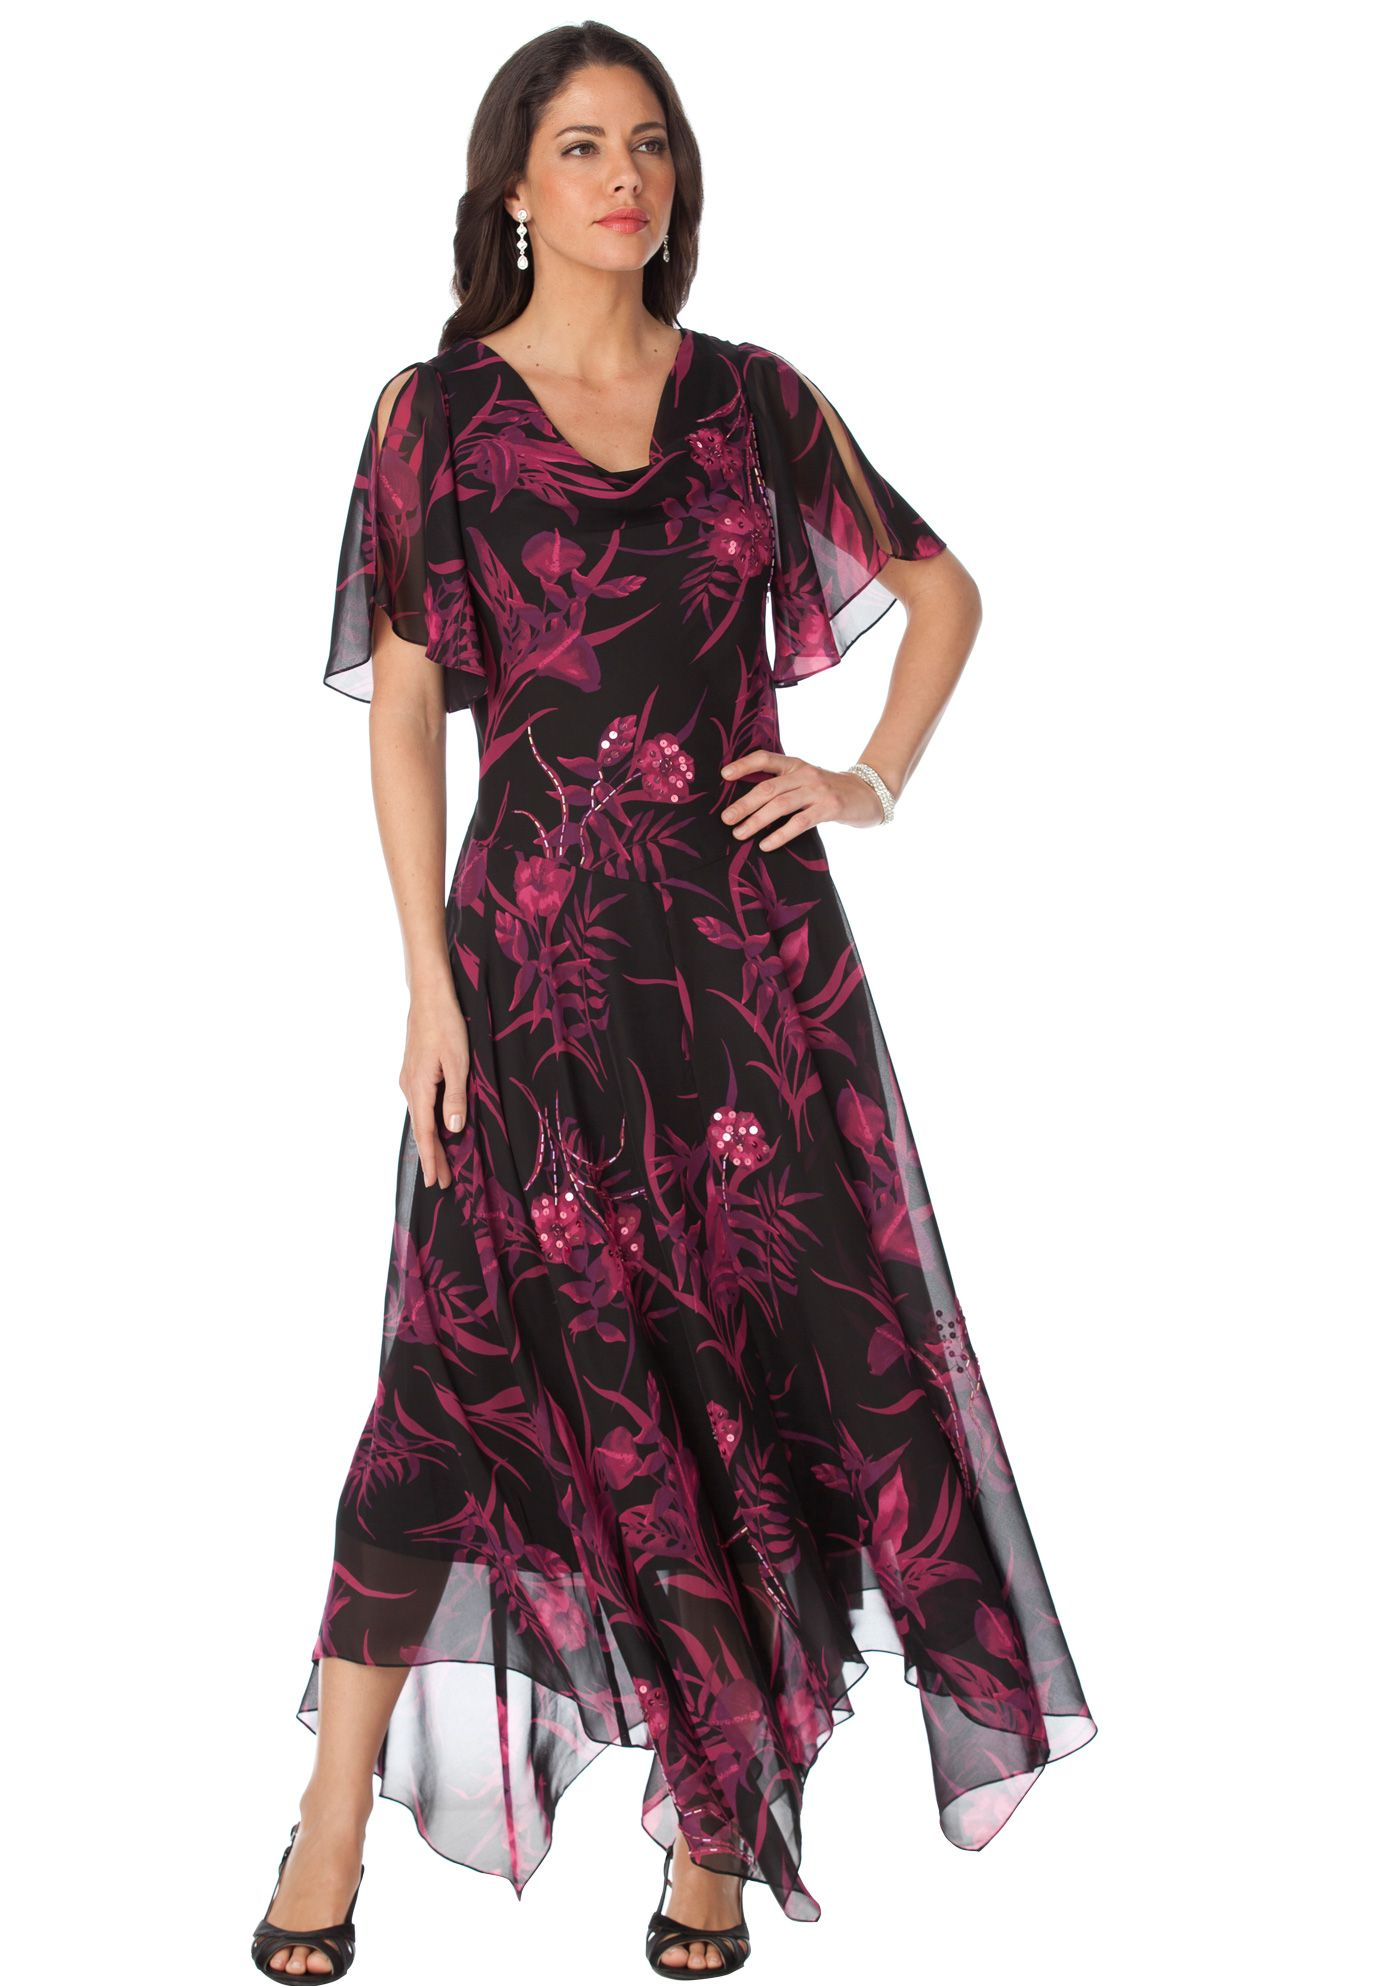 Plus Size Gowns for Special Occasions